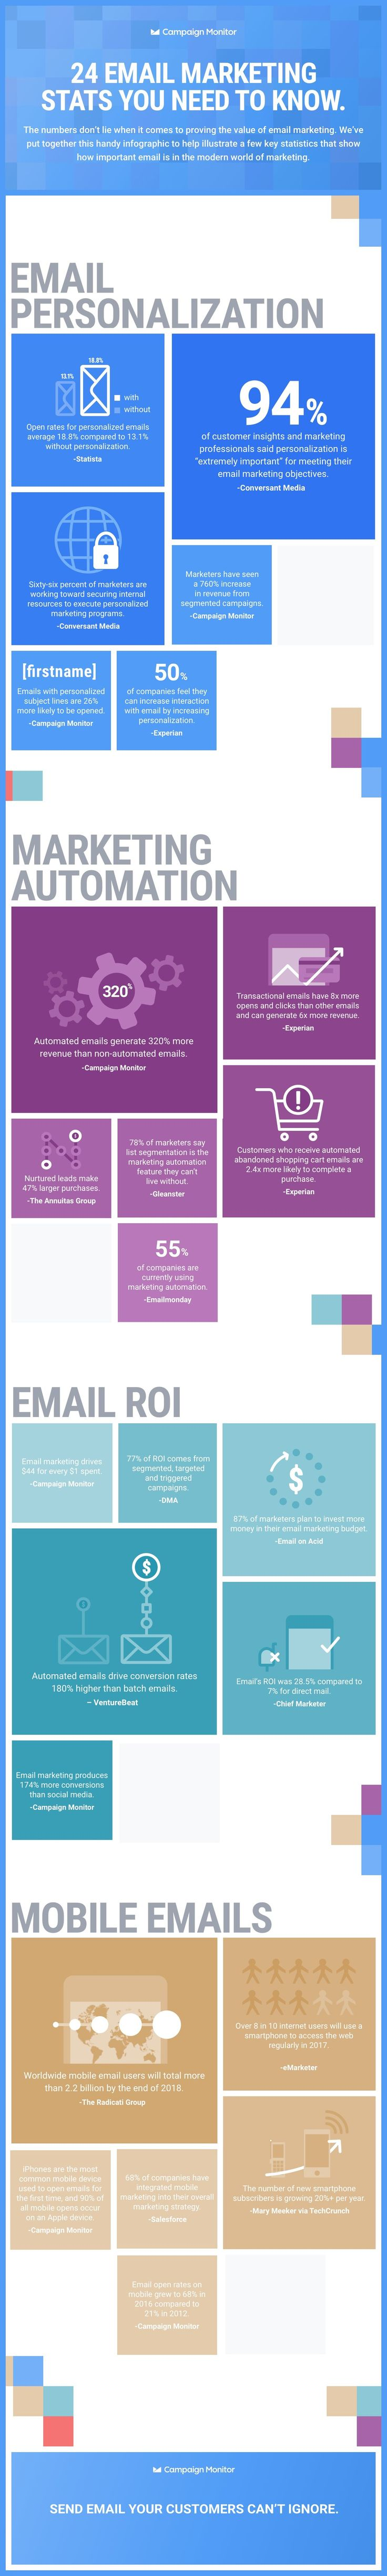 Social media marketing may be sexier, but don't overlook the value of email marketing in your digital strategy.